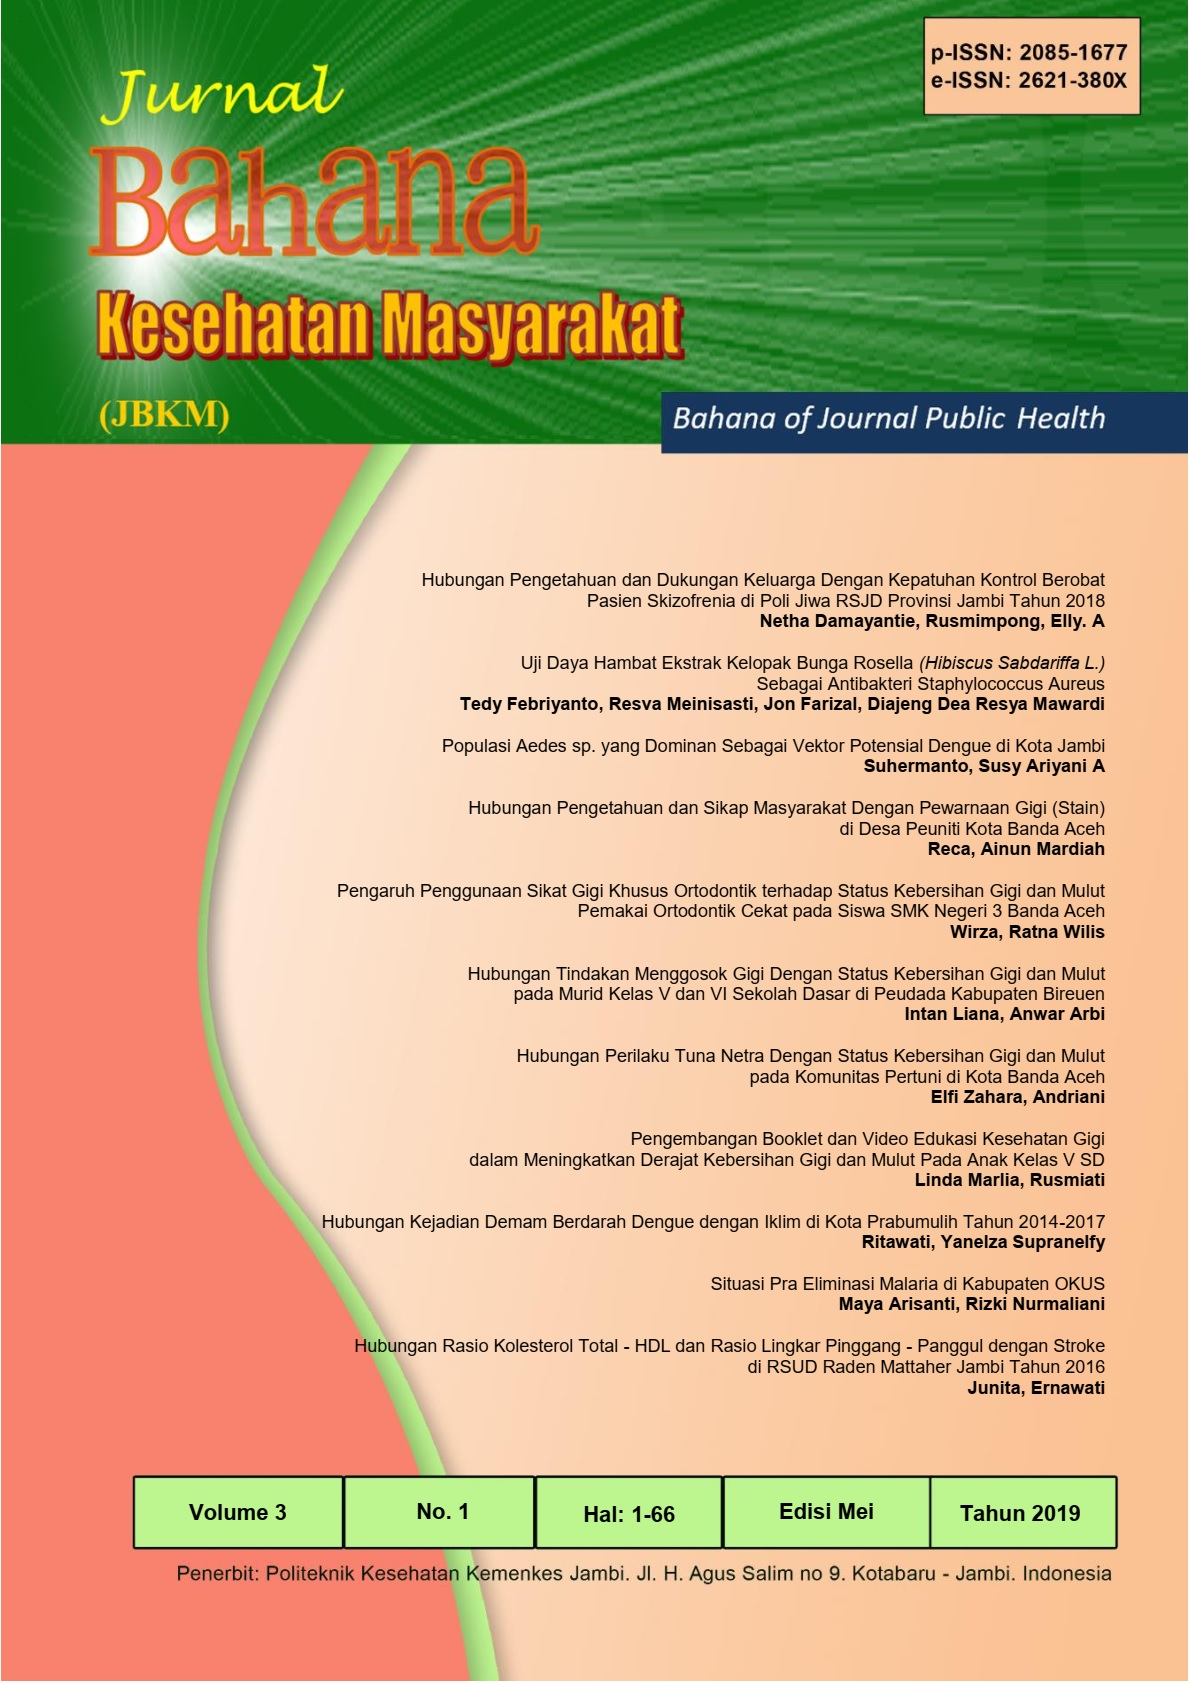 JBKM Vol.3 No.1 Edisi Mei 2019